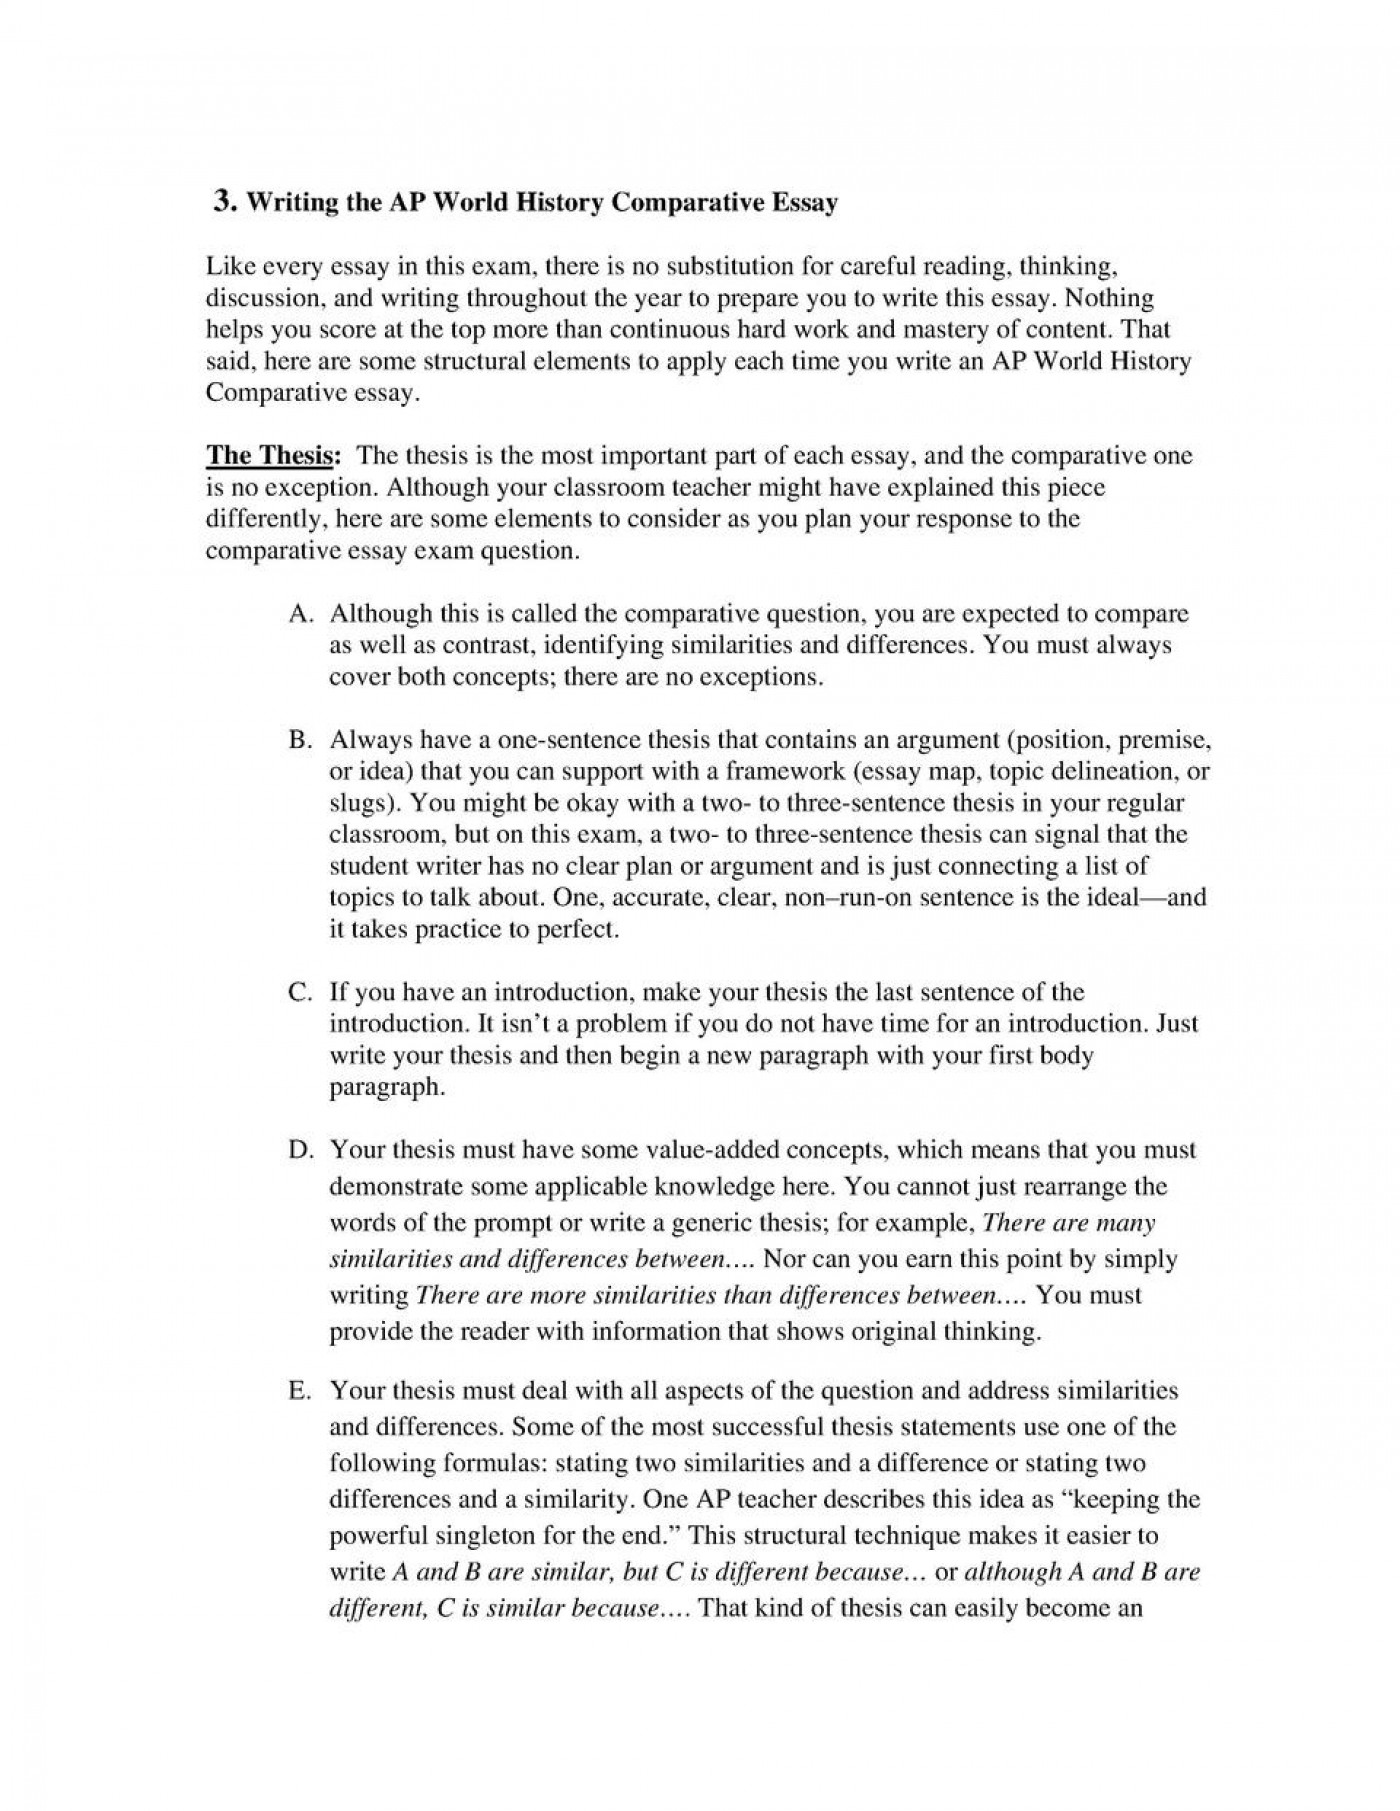 012 Essay For Exam Comprehension In Sample Essays Xje How To Write An Fast Stirring Introduction Examples About Yourself Mla Leadership College 1400